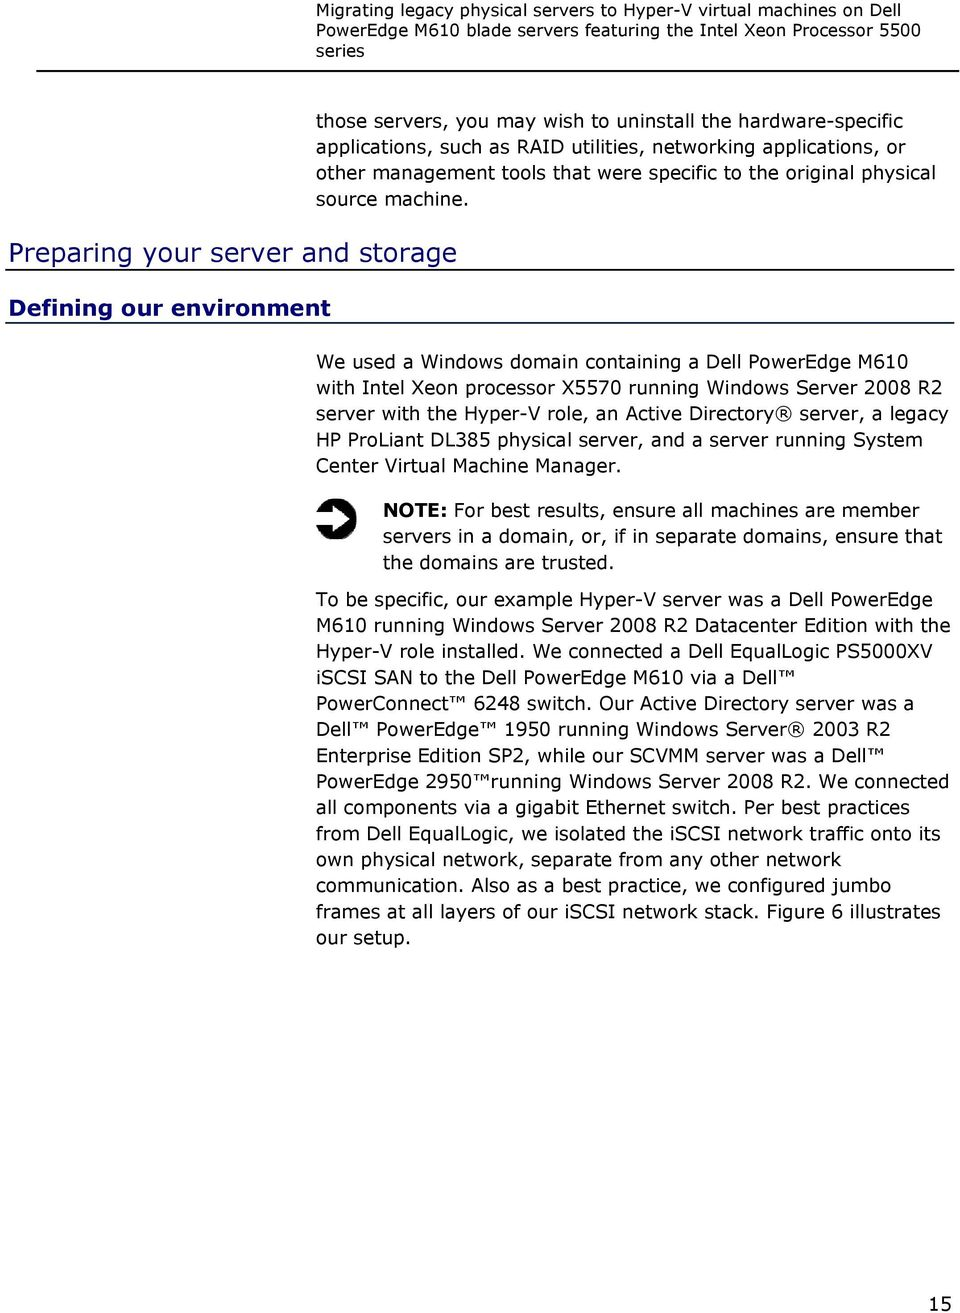 We used a Windows domain containing a Dell PowerEdge M610 with Intel Xeon processor X5570 running Windows Server 2008 R2 server with the Hyper-V role, an Active Directory server, a legacy HP ProLiant